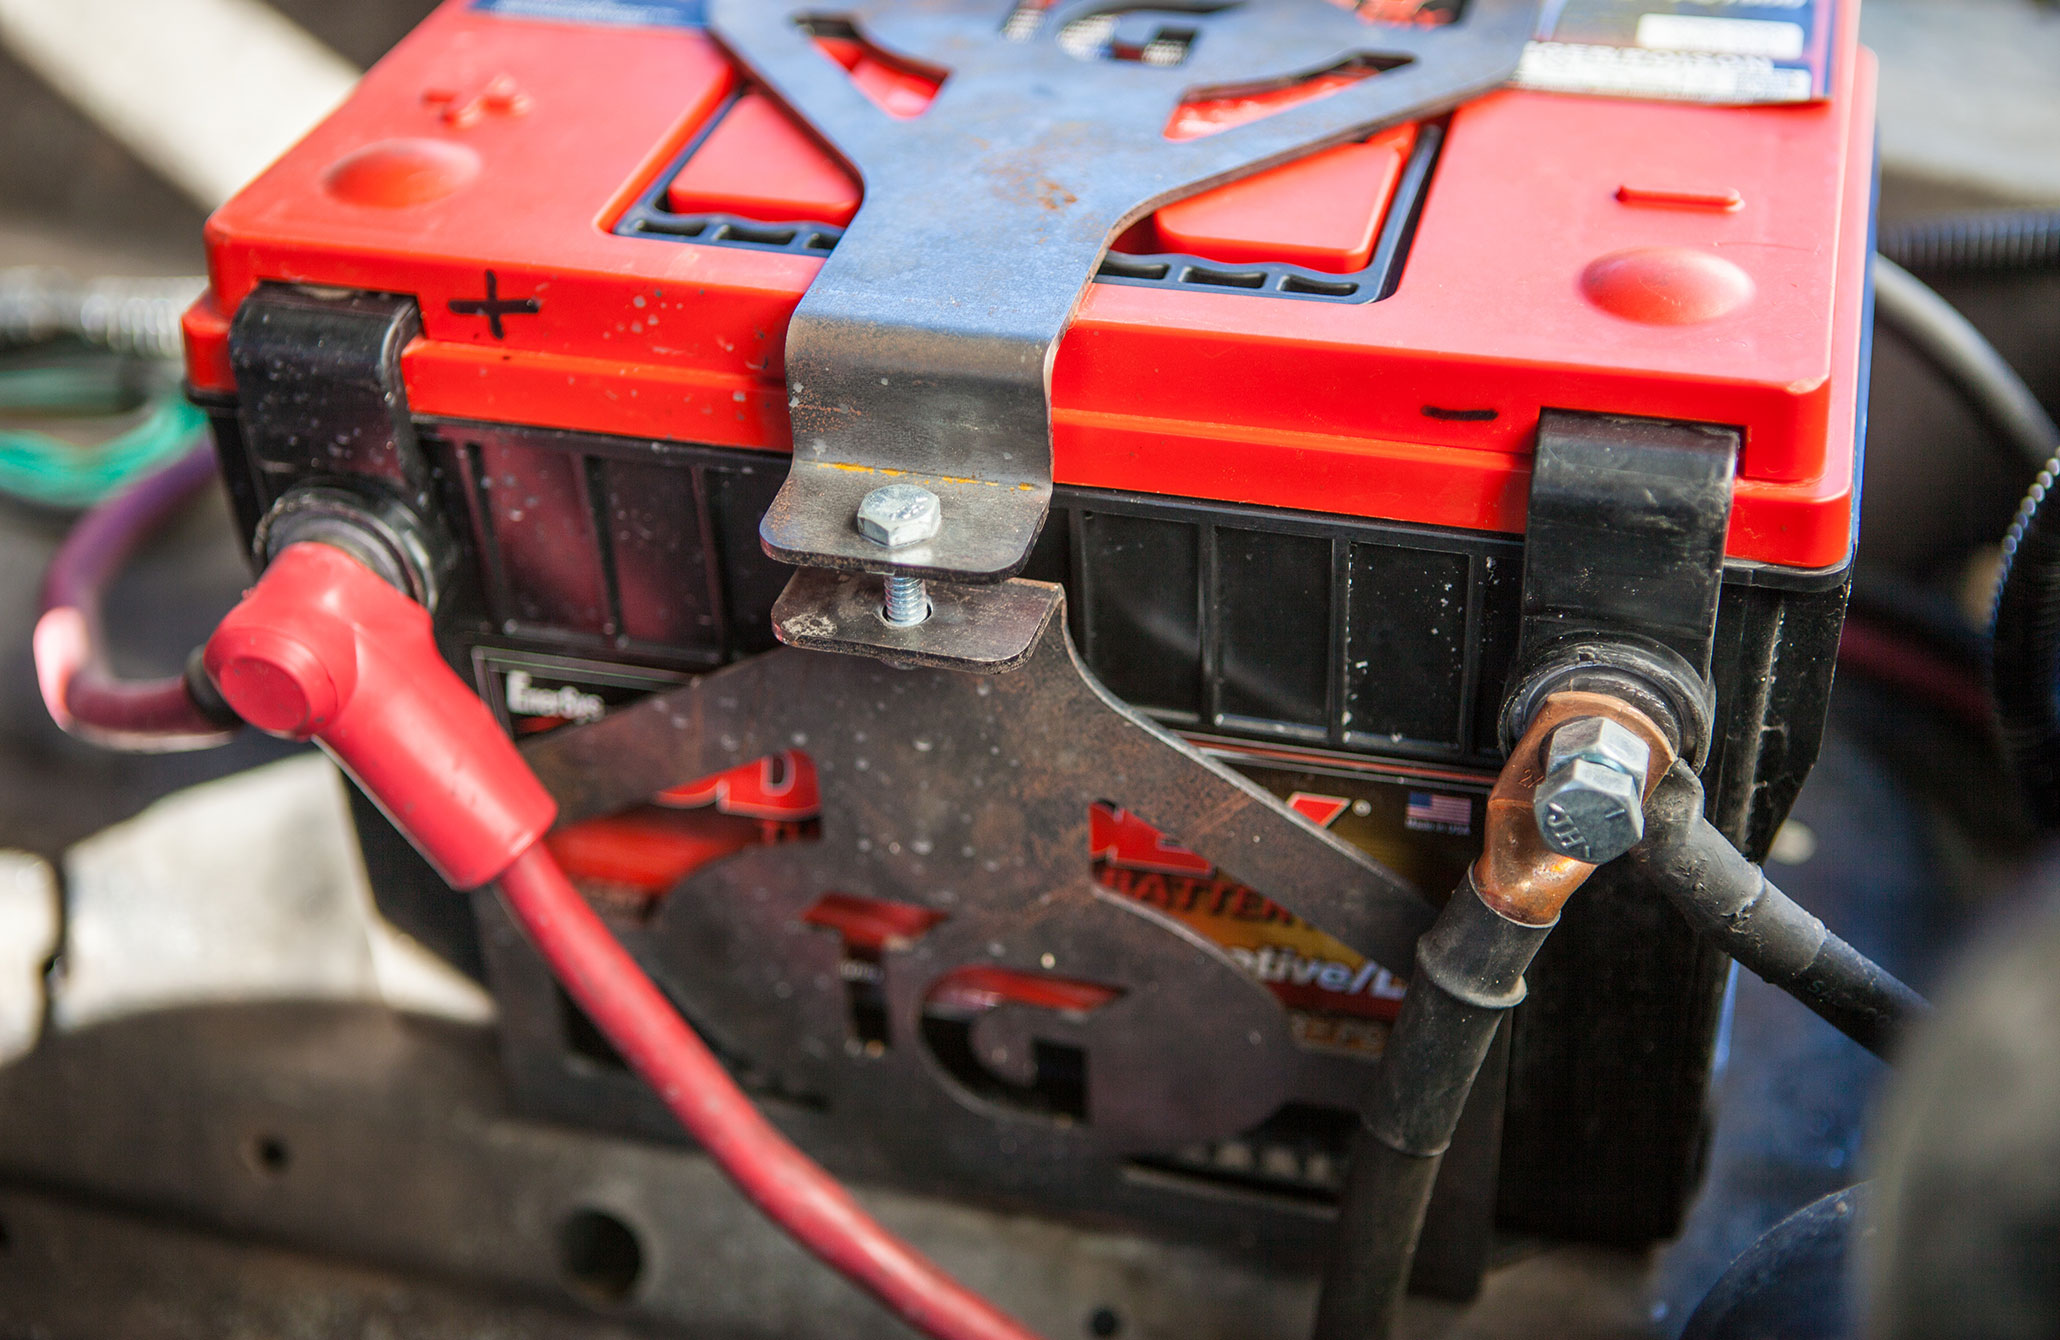 Some batteries use post terminals, while others use accept ring terminals. The terminals can be located on the side of the battery or the top of the battery. Odyssey offers post terminals that can be added to any of the company's batteries to retain compatibility with your factory cables. Here we used standard hardware to ease the addition of jumper cables and covered the positive post to ensure that we do not arc across the battery.